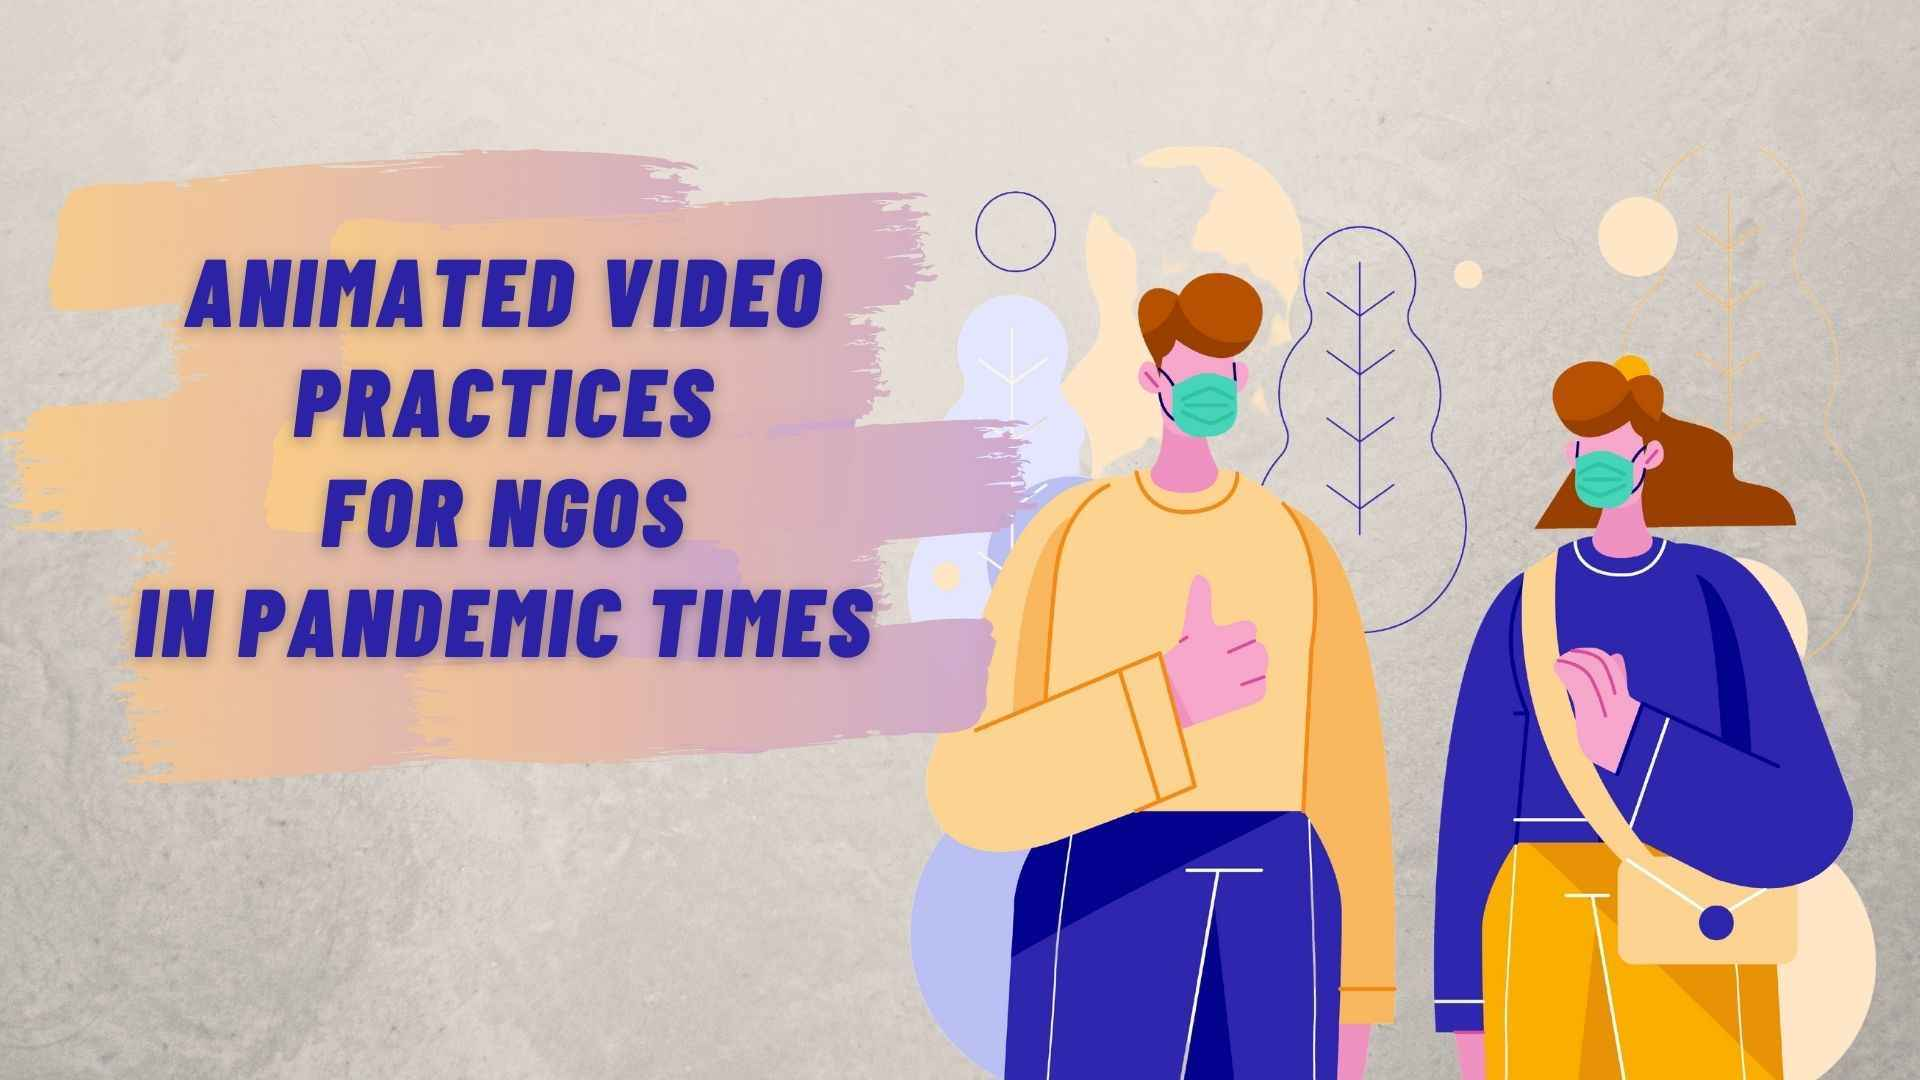 Animated video practices for NGOs in pandemic times